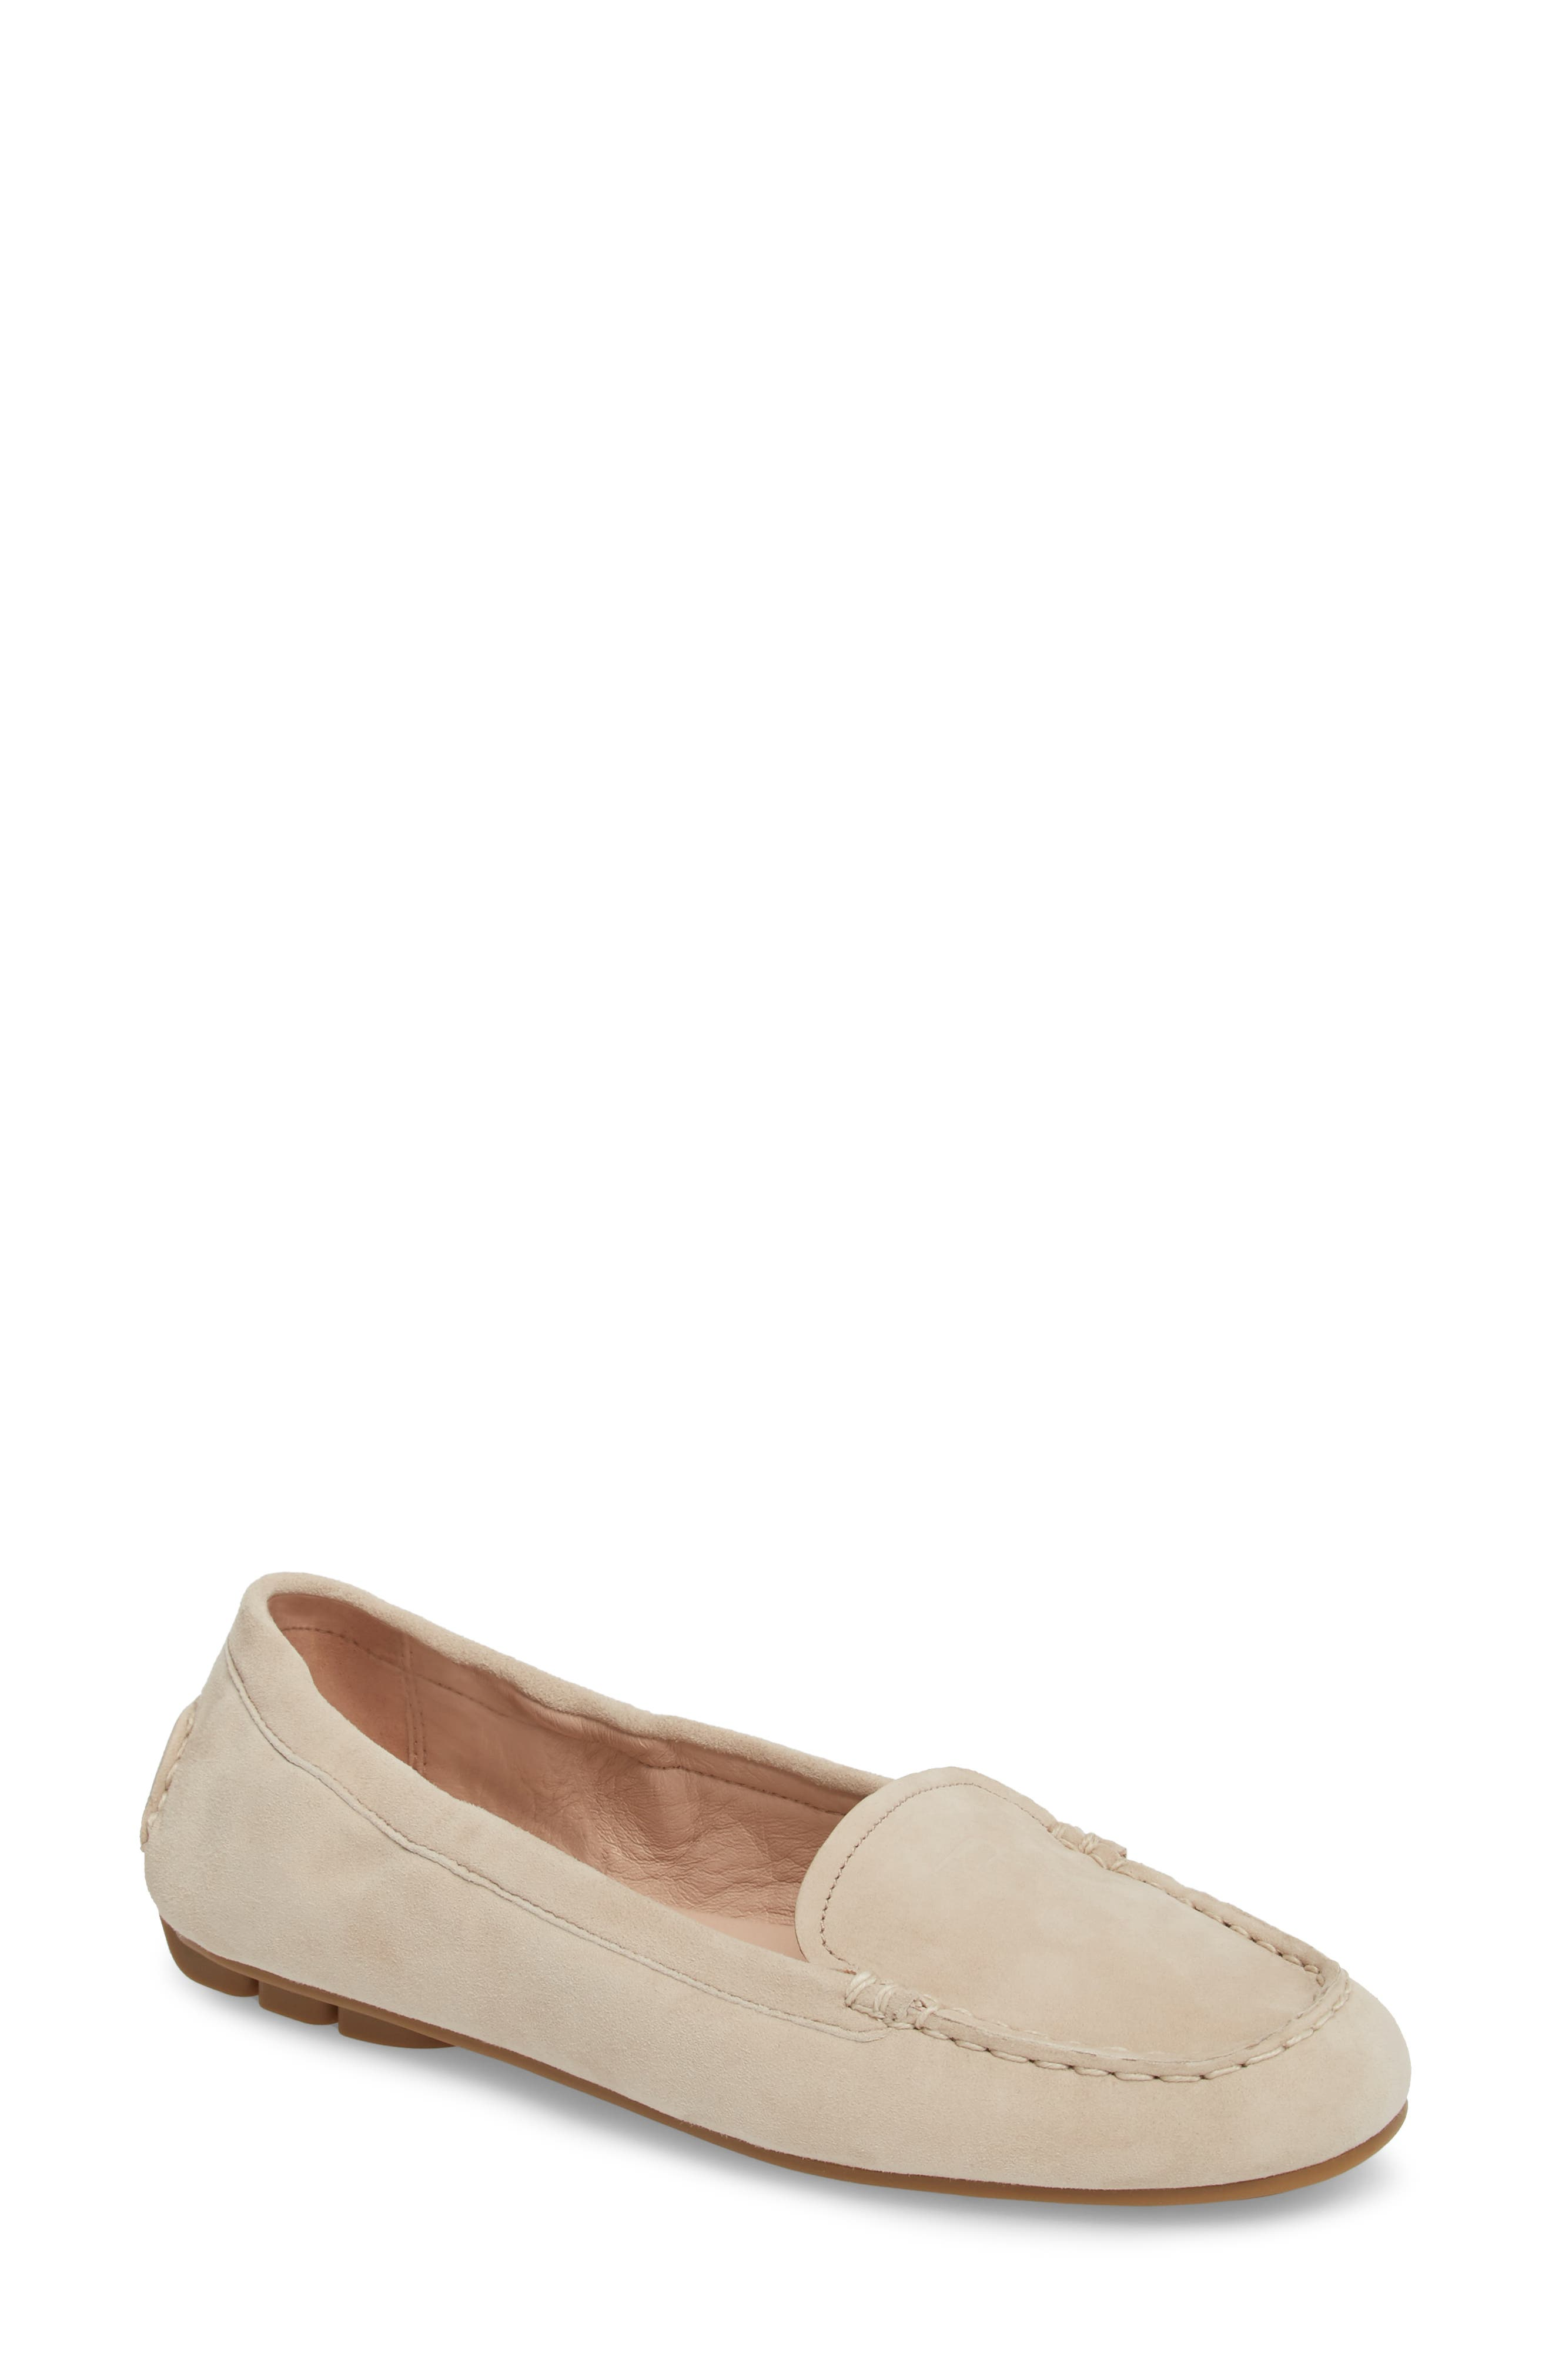 Kristine Loafer,                             Main thumbnail 1, color,                             Ceramic Suede